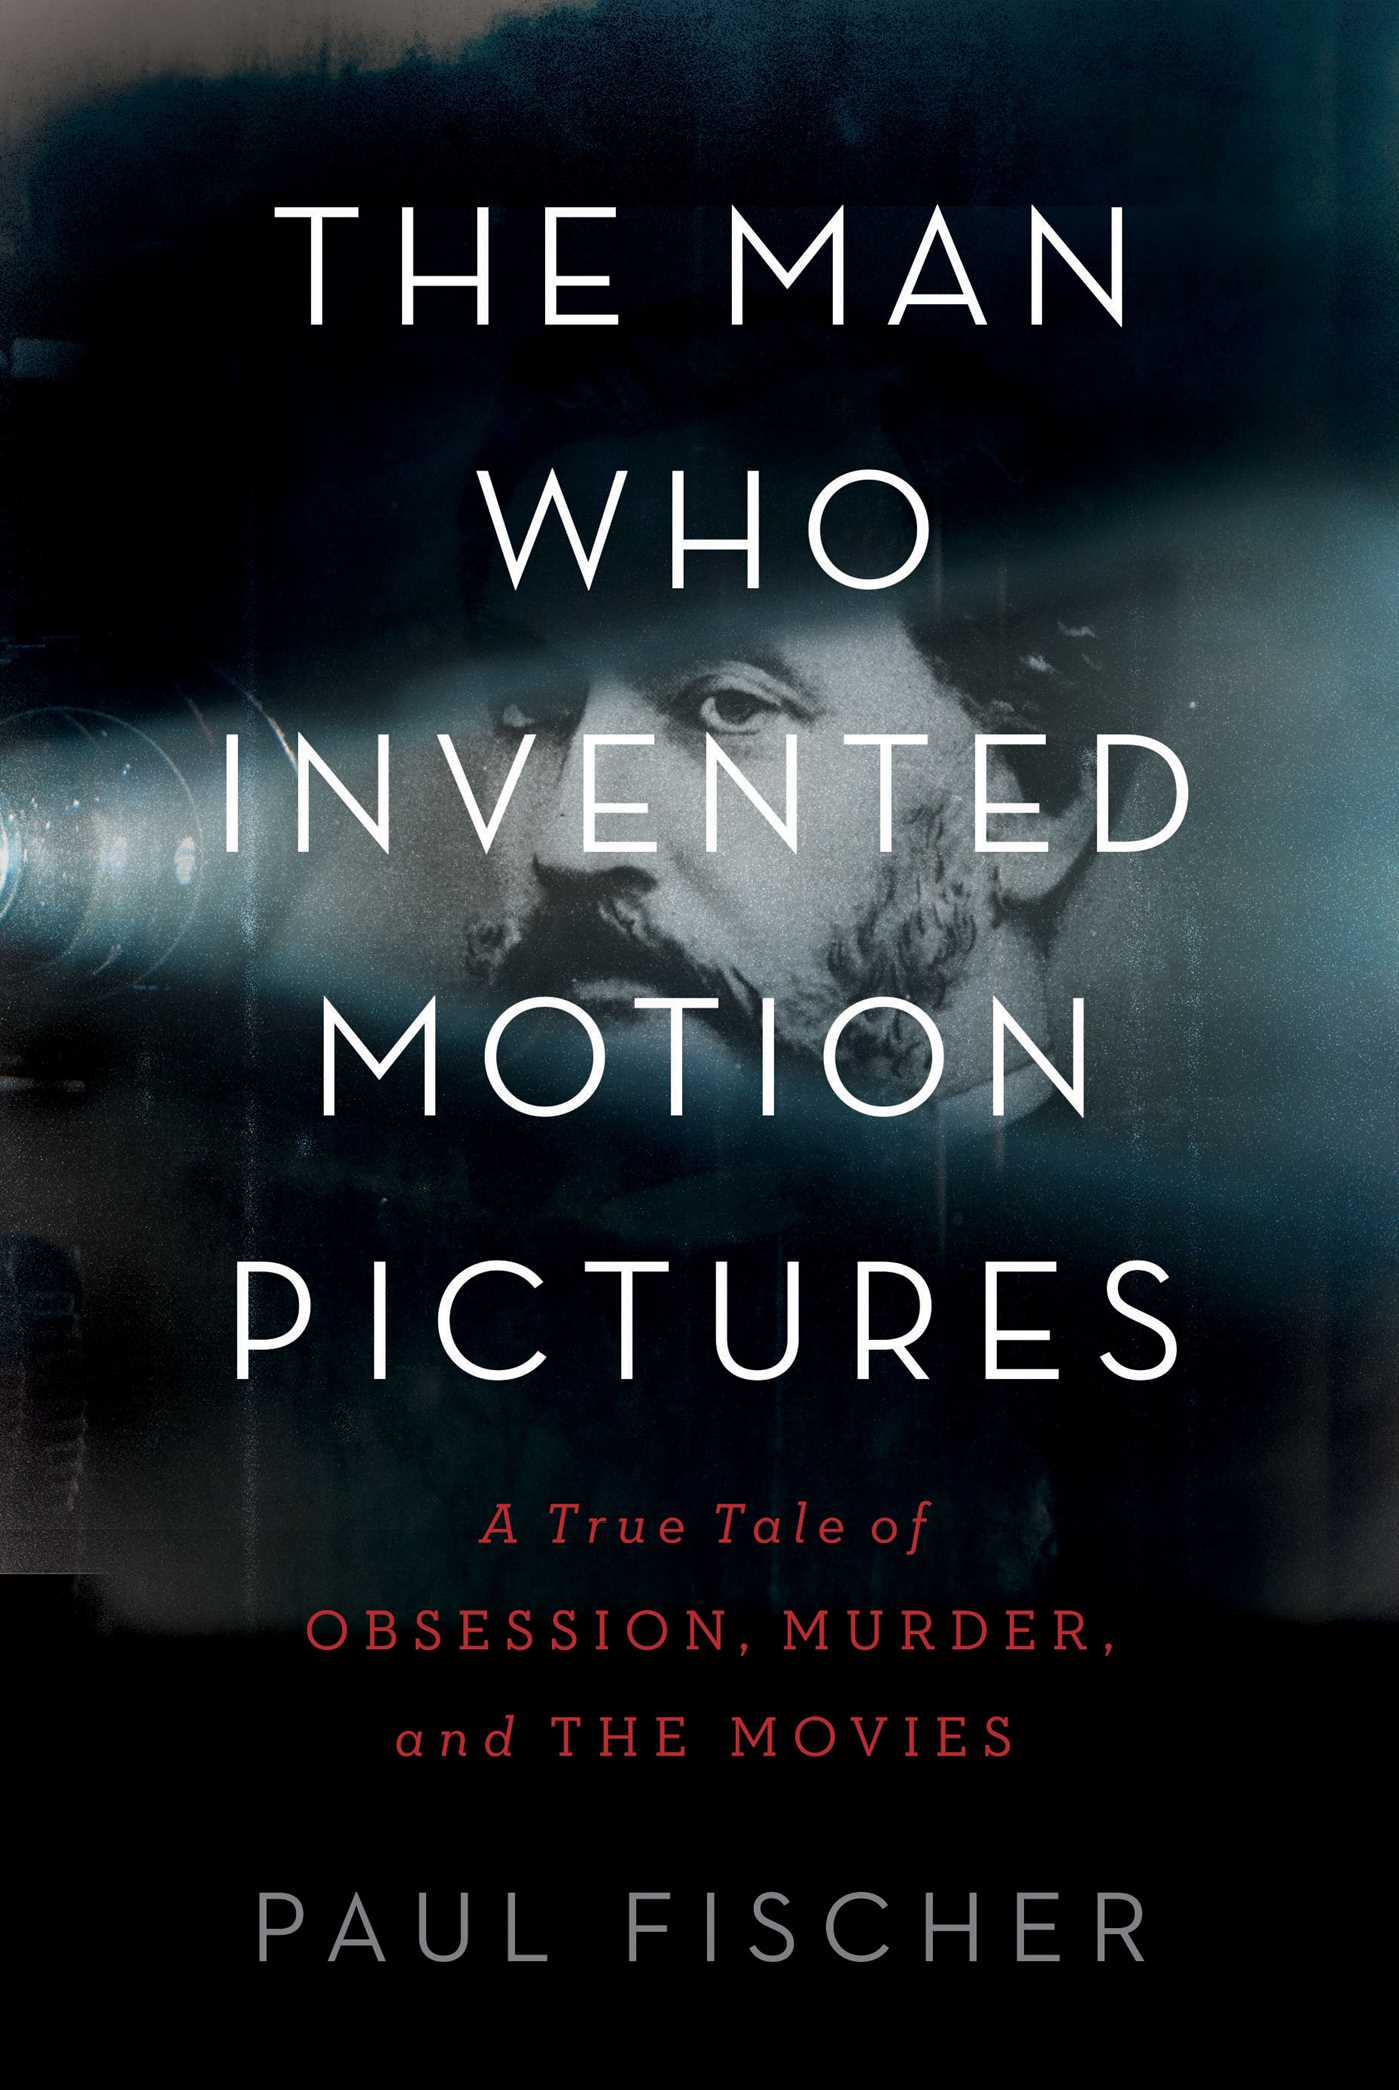 The Man Who Invented Motion Pictures: A True Tale of Obsession, Murder, and the Movies